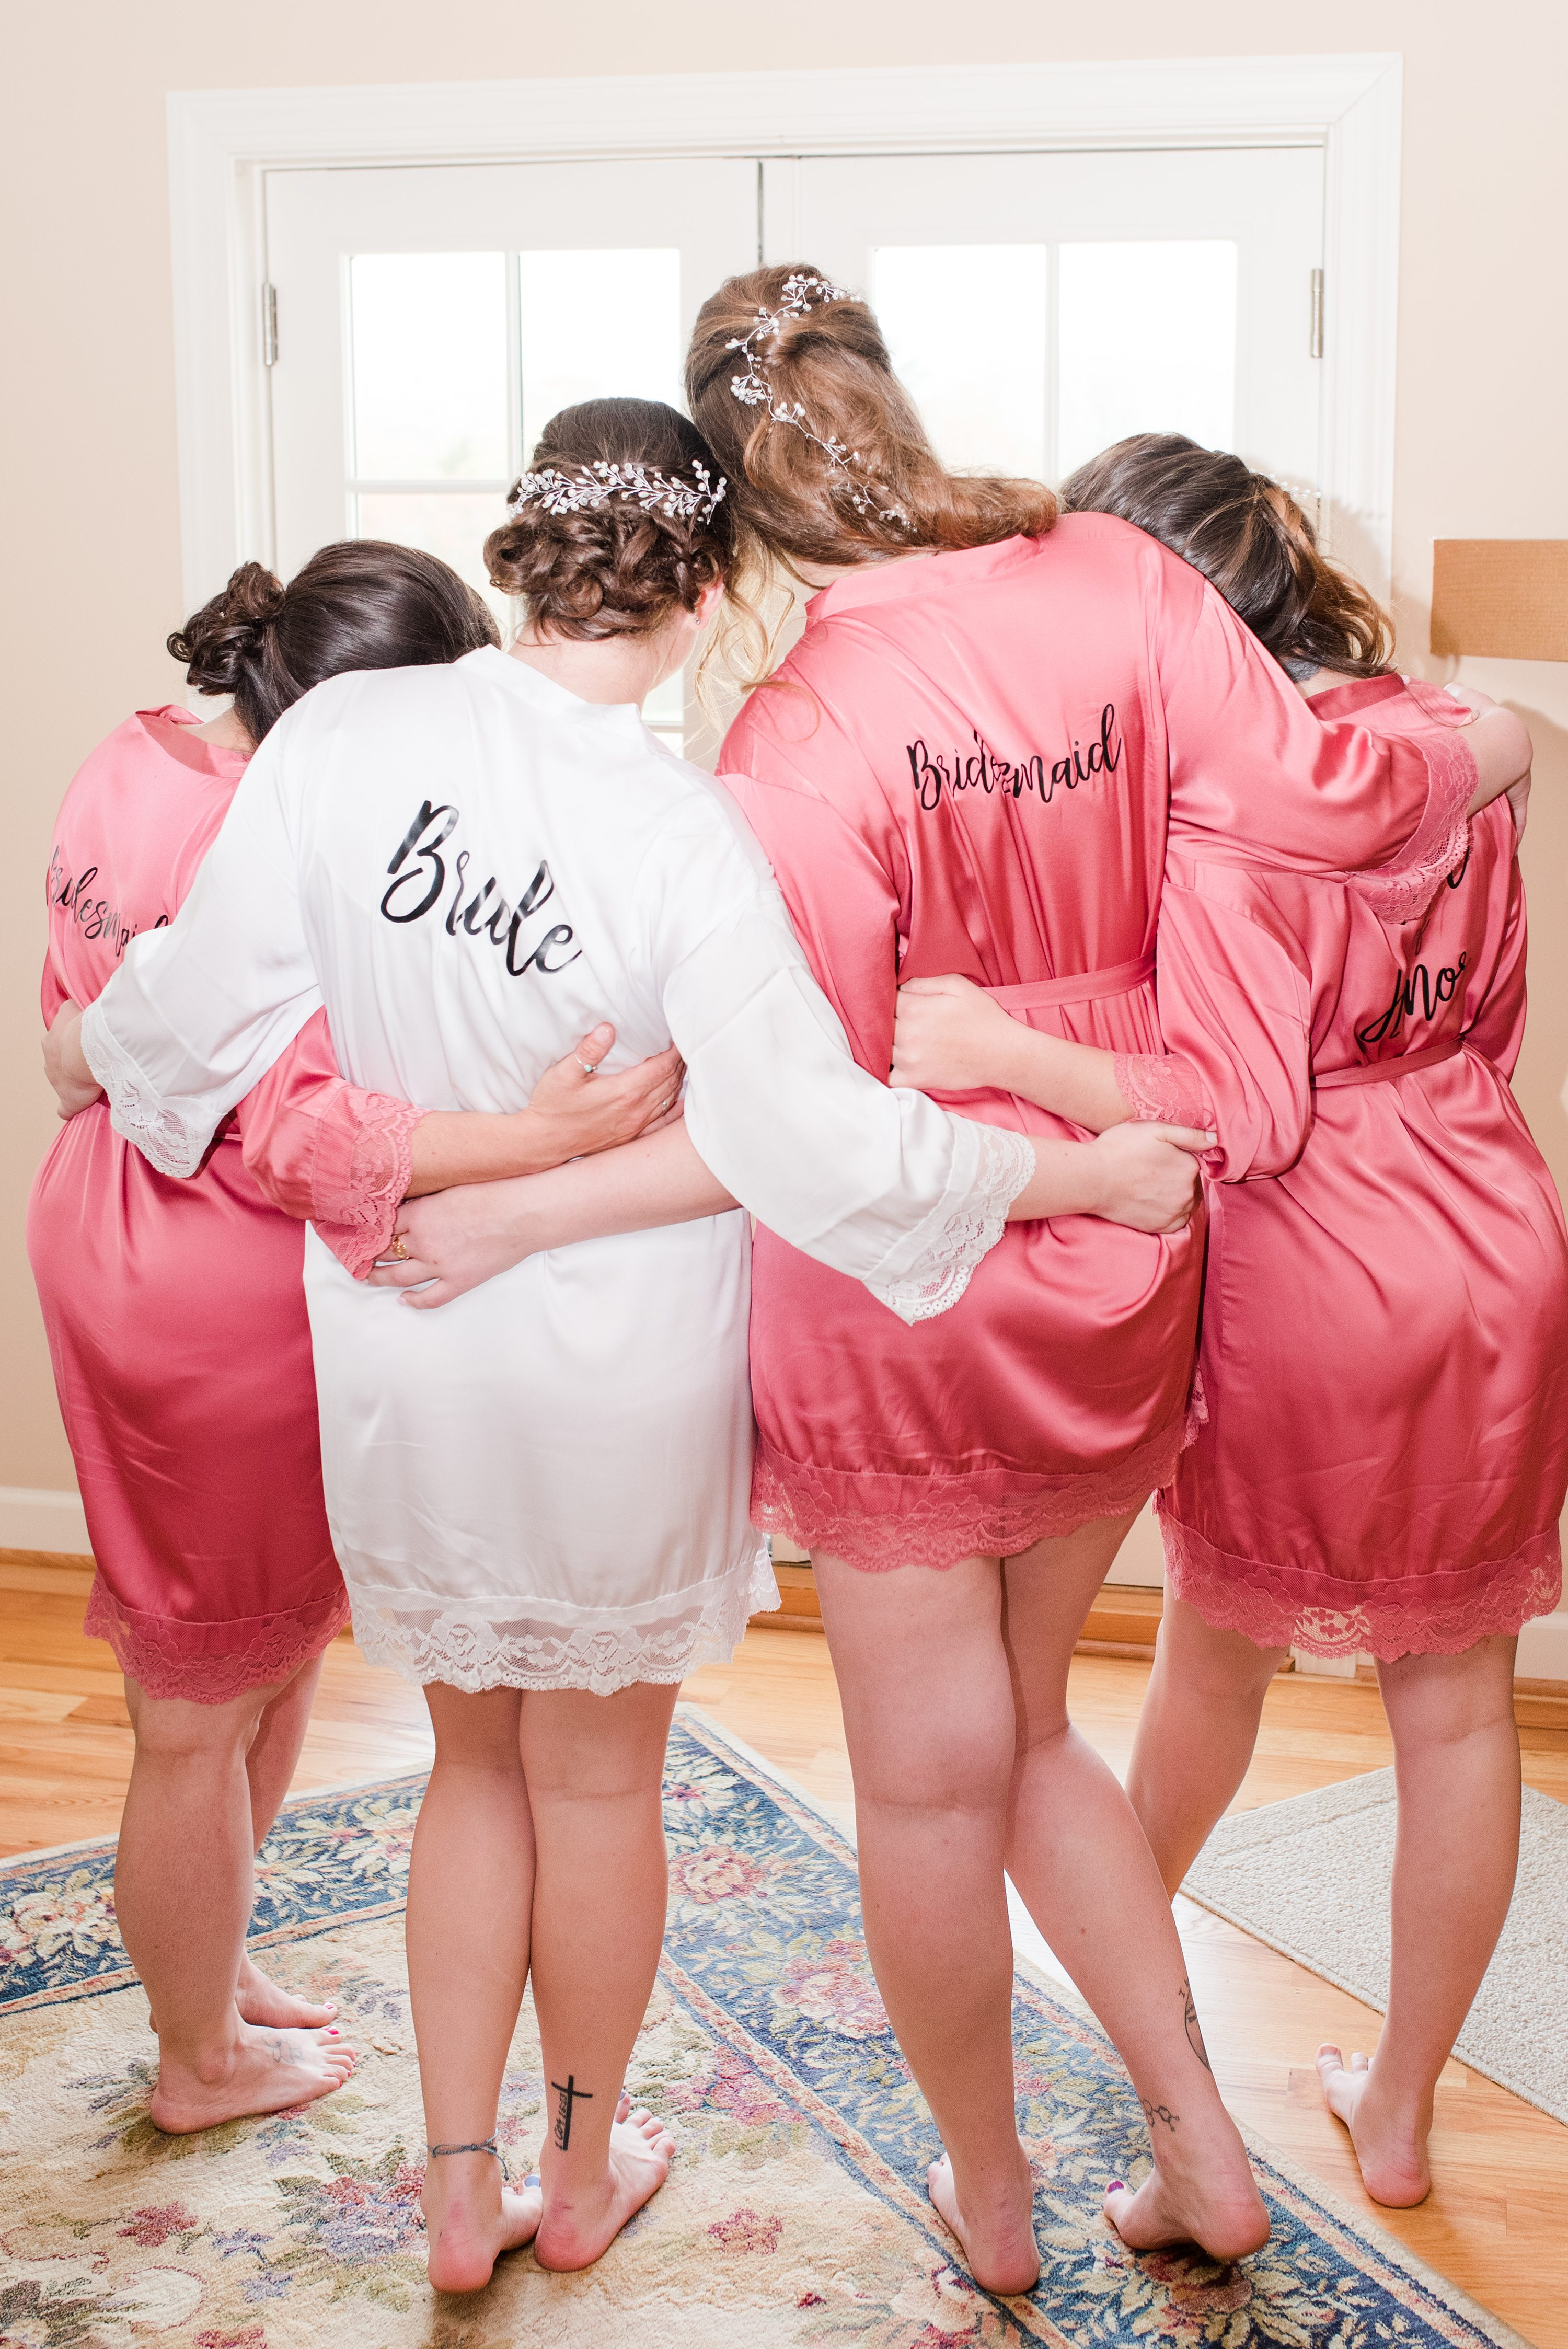 Charlottesville Wedding Photographer,Spring,bride and bridesmaids,wedding robes,bridesmaids,bridesmaids in robes,bridal party on bed,champagne